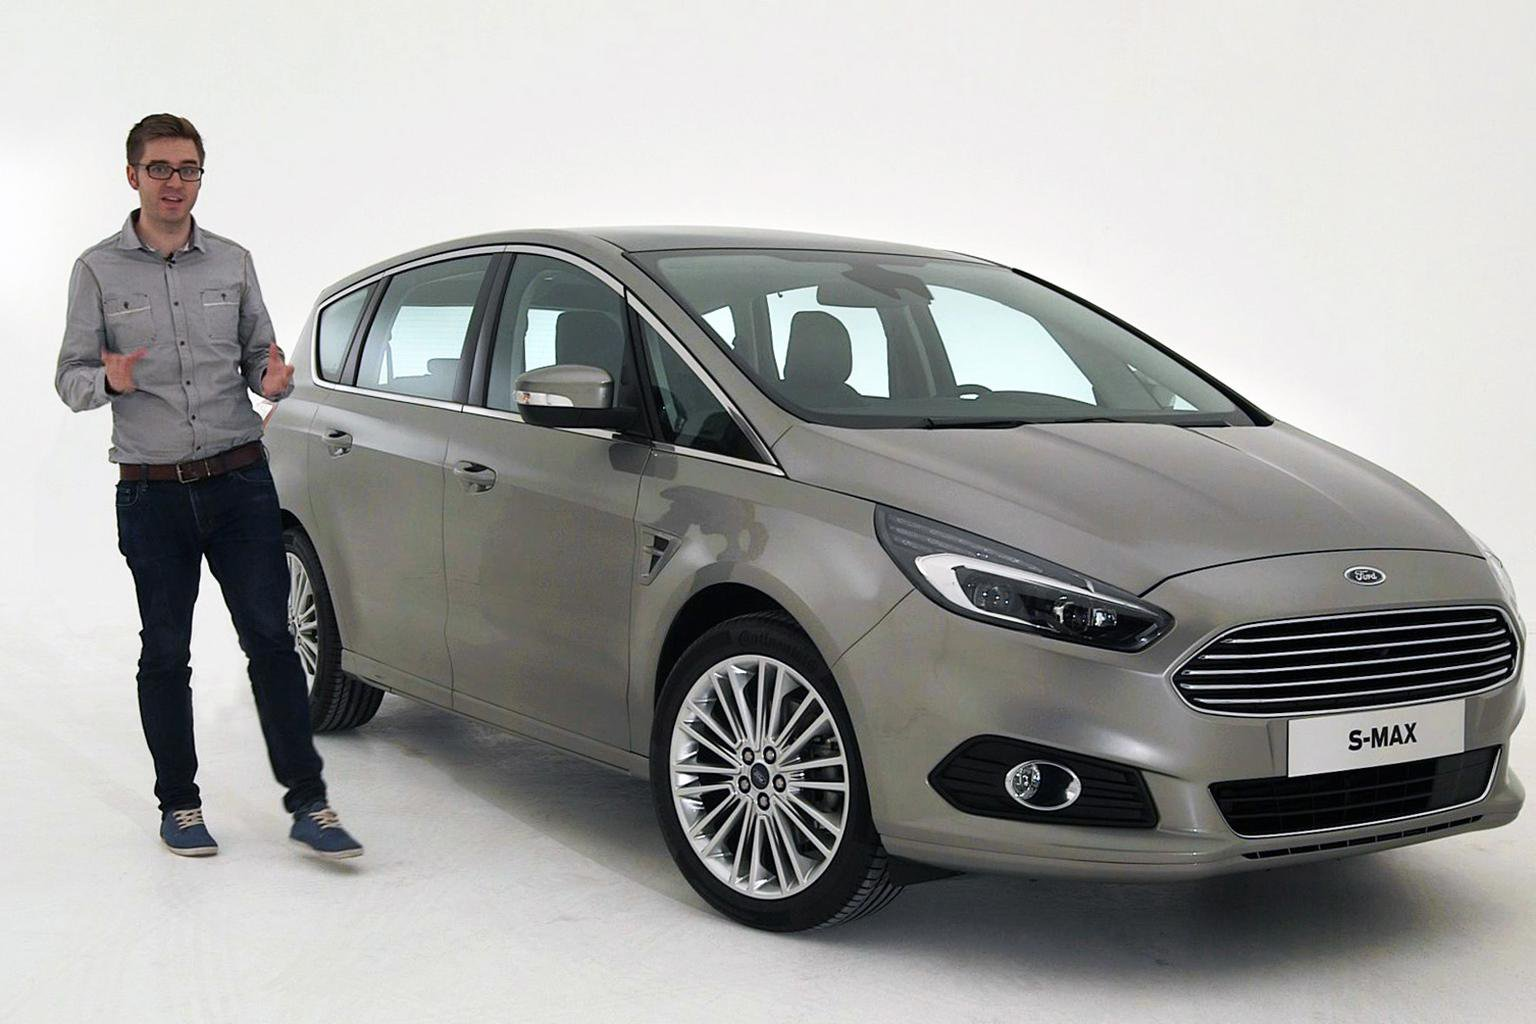 2015 Ford S-Max - specs, pricing and on-sale date